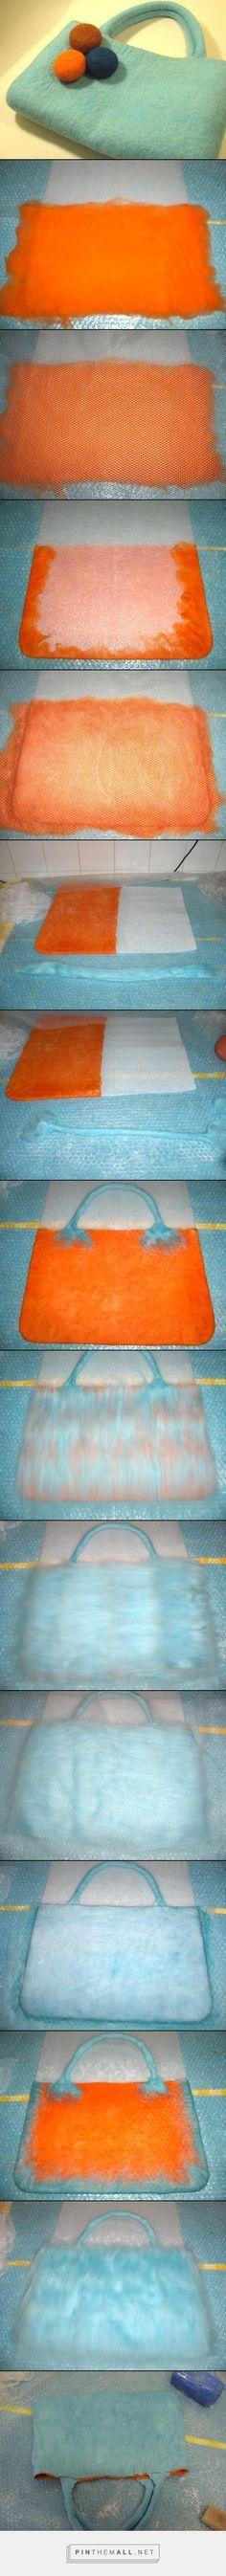 How to wet felt a seamless bag with handles in two colors - workshop by Vanda F. Sousa from Going the Dodo Way. Learn more at www.vandafsousa.com - created via https://pinthemall.net